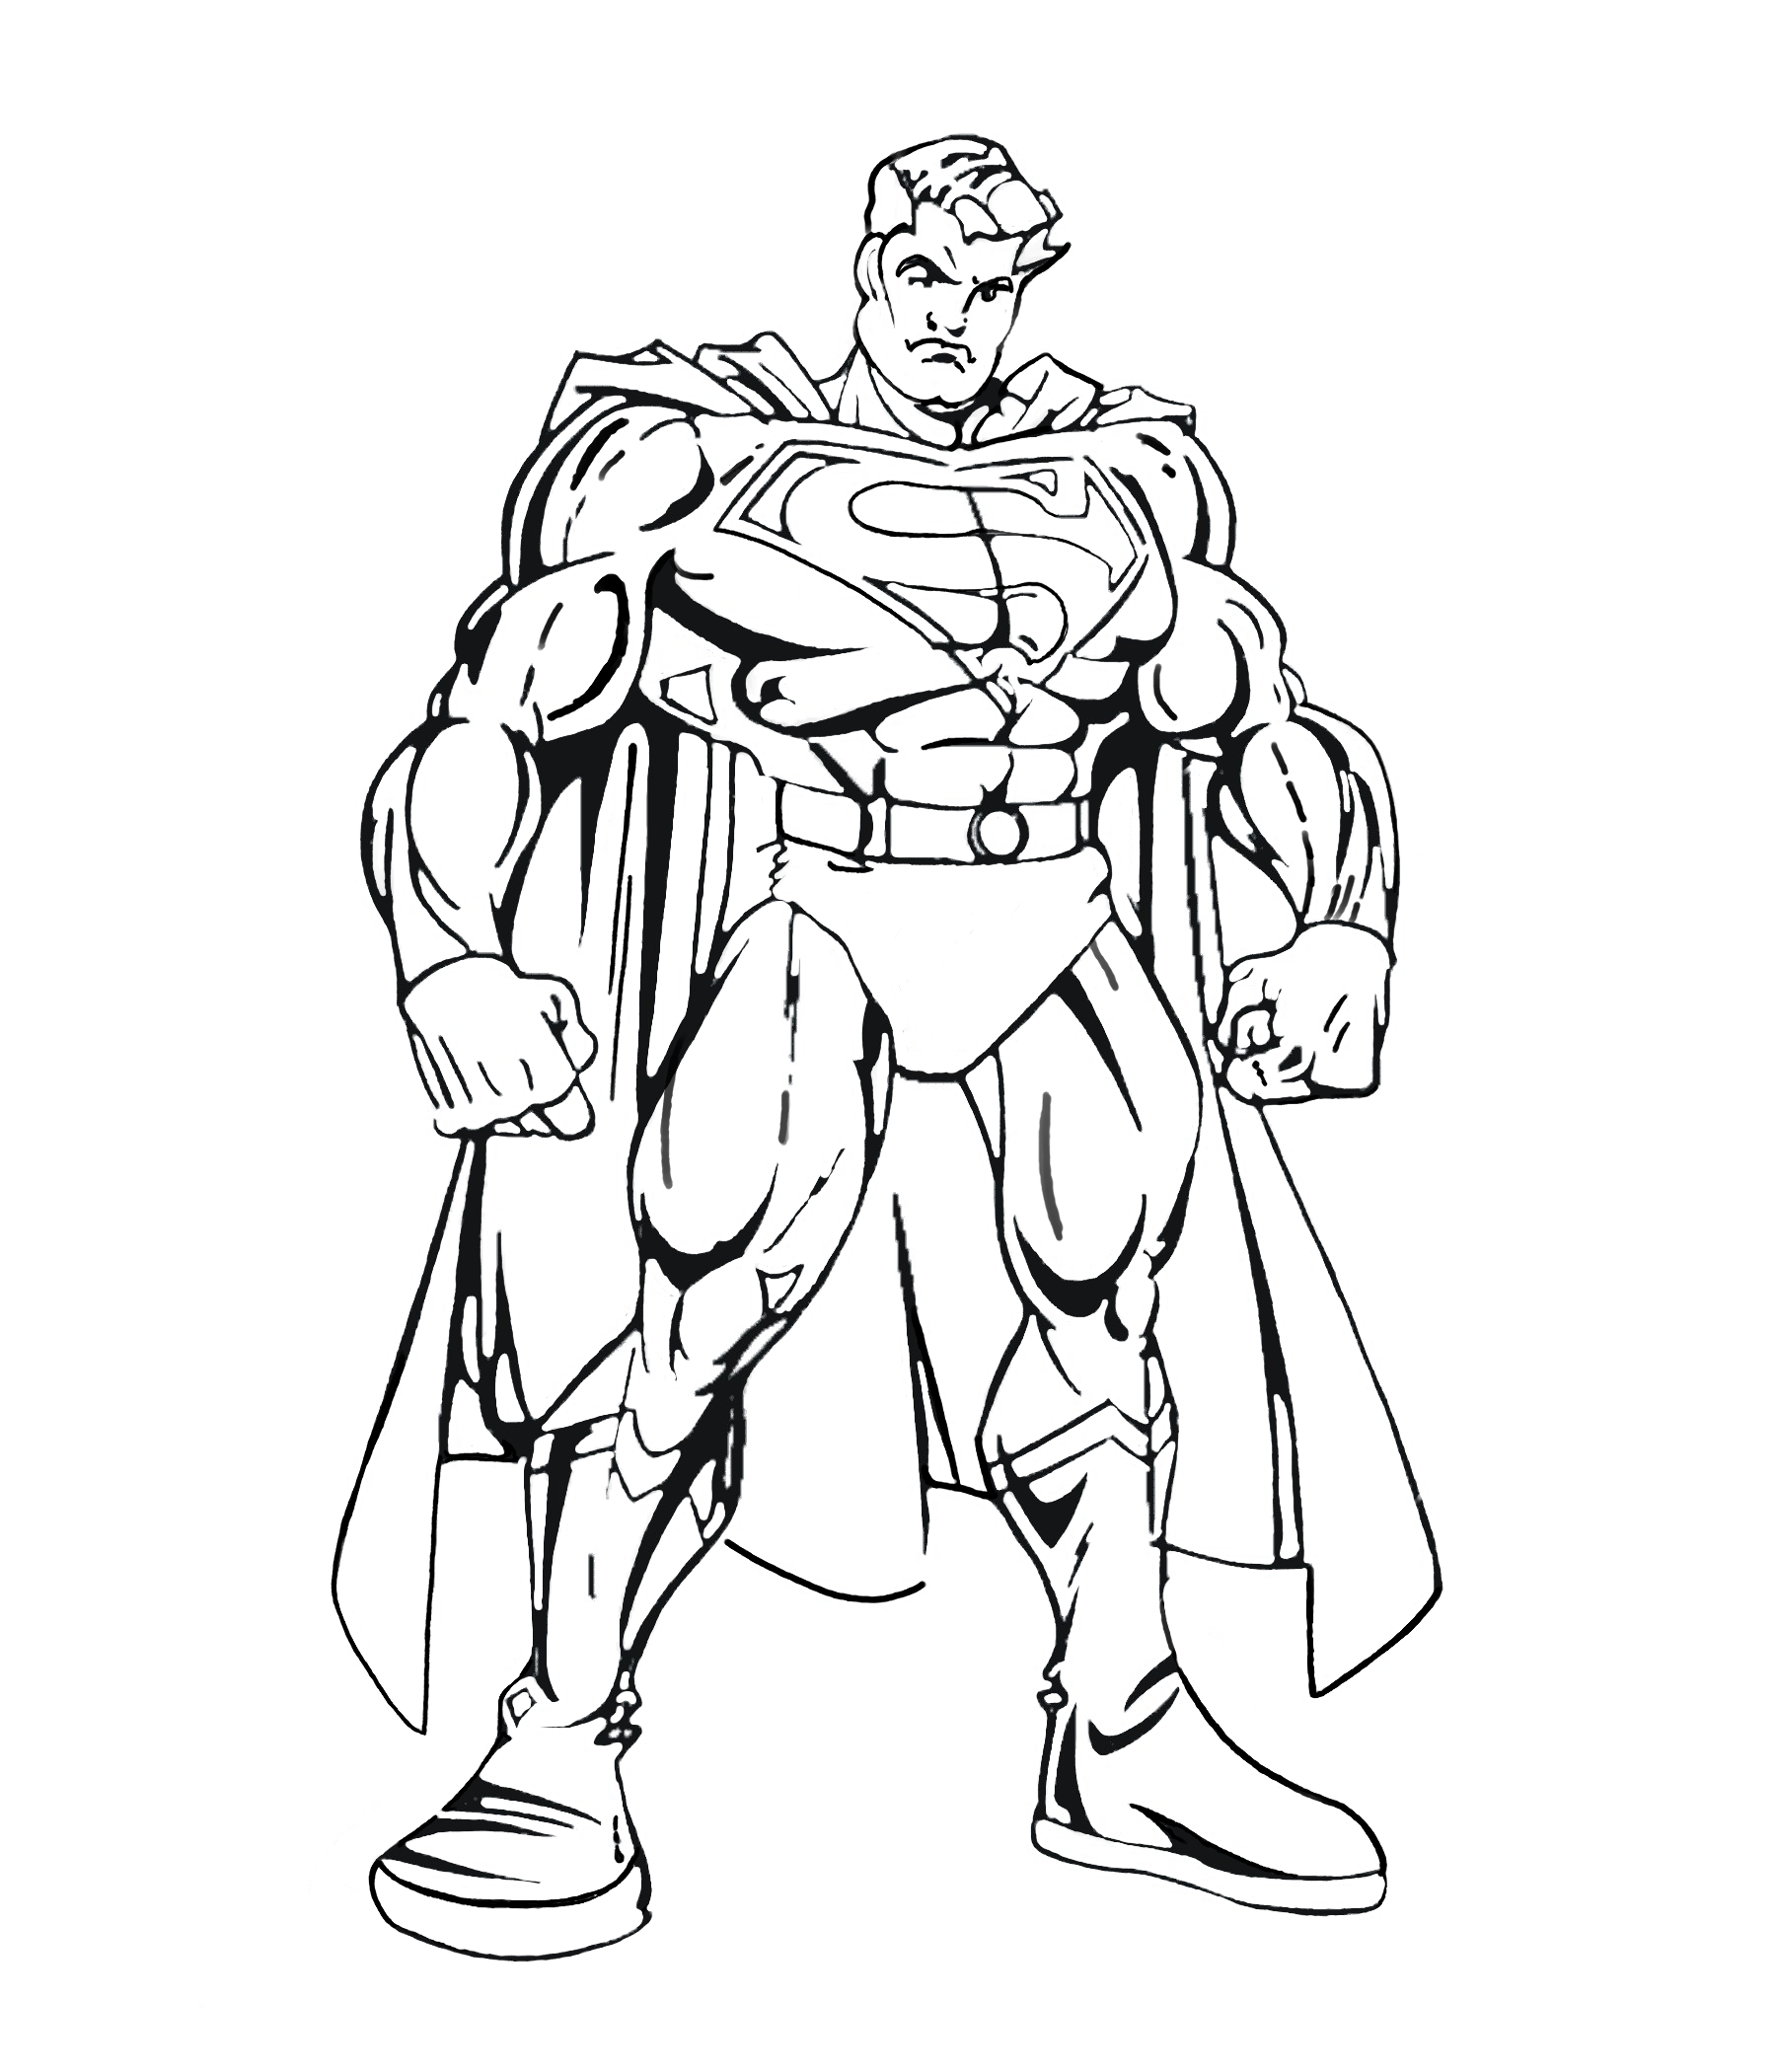 Superman coloring pages to print sketch coloring page - Superman dessin ...